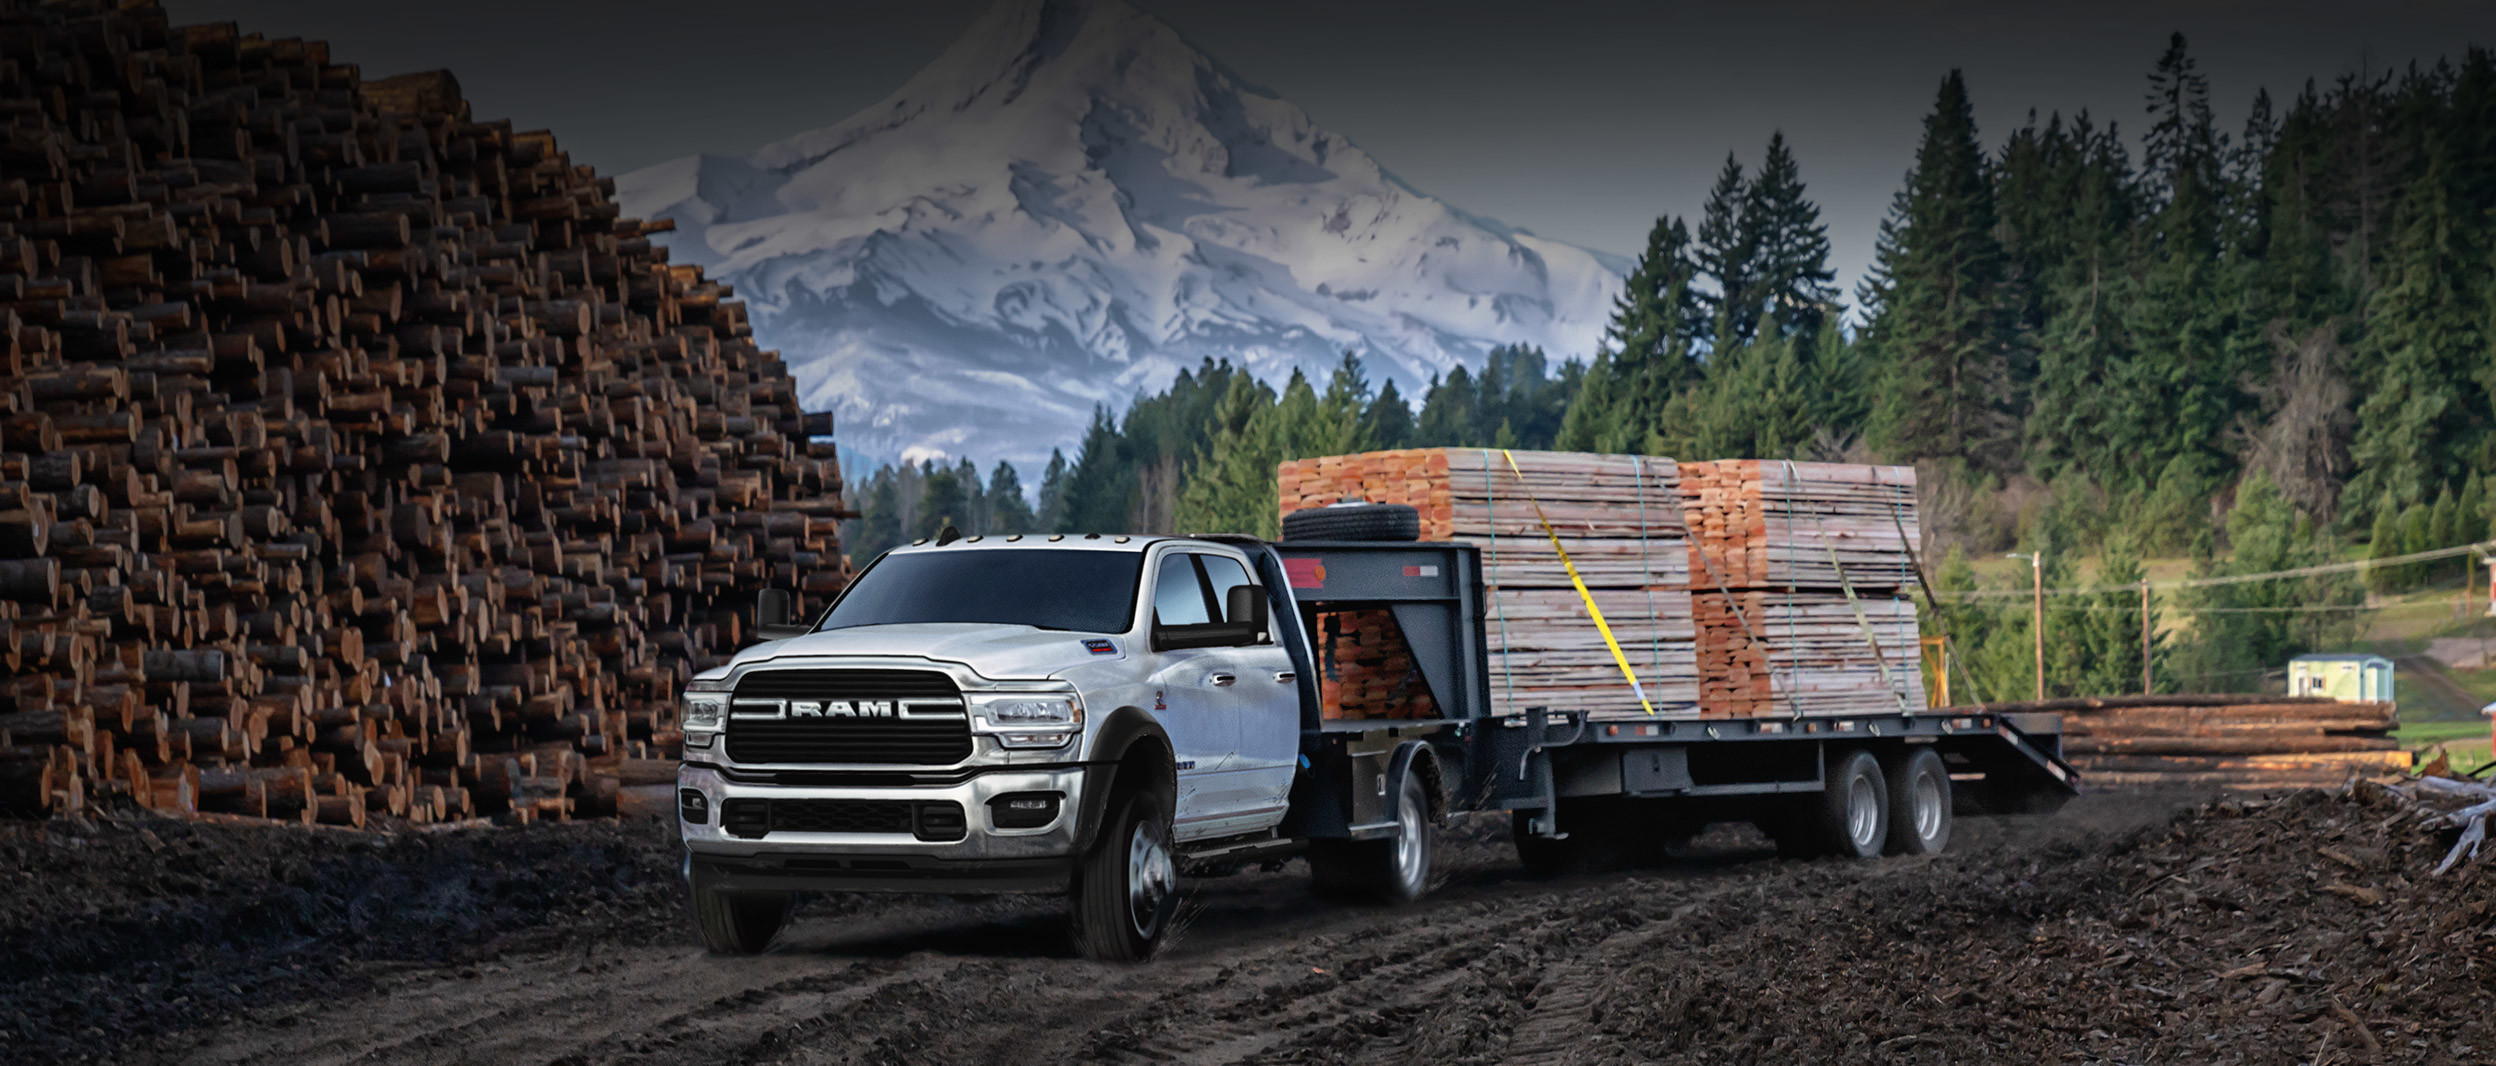 The white 2020 Ram Chassis Cab towing lumbers in construction site